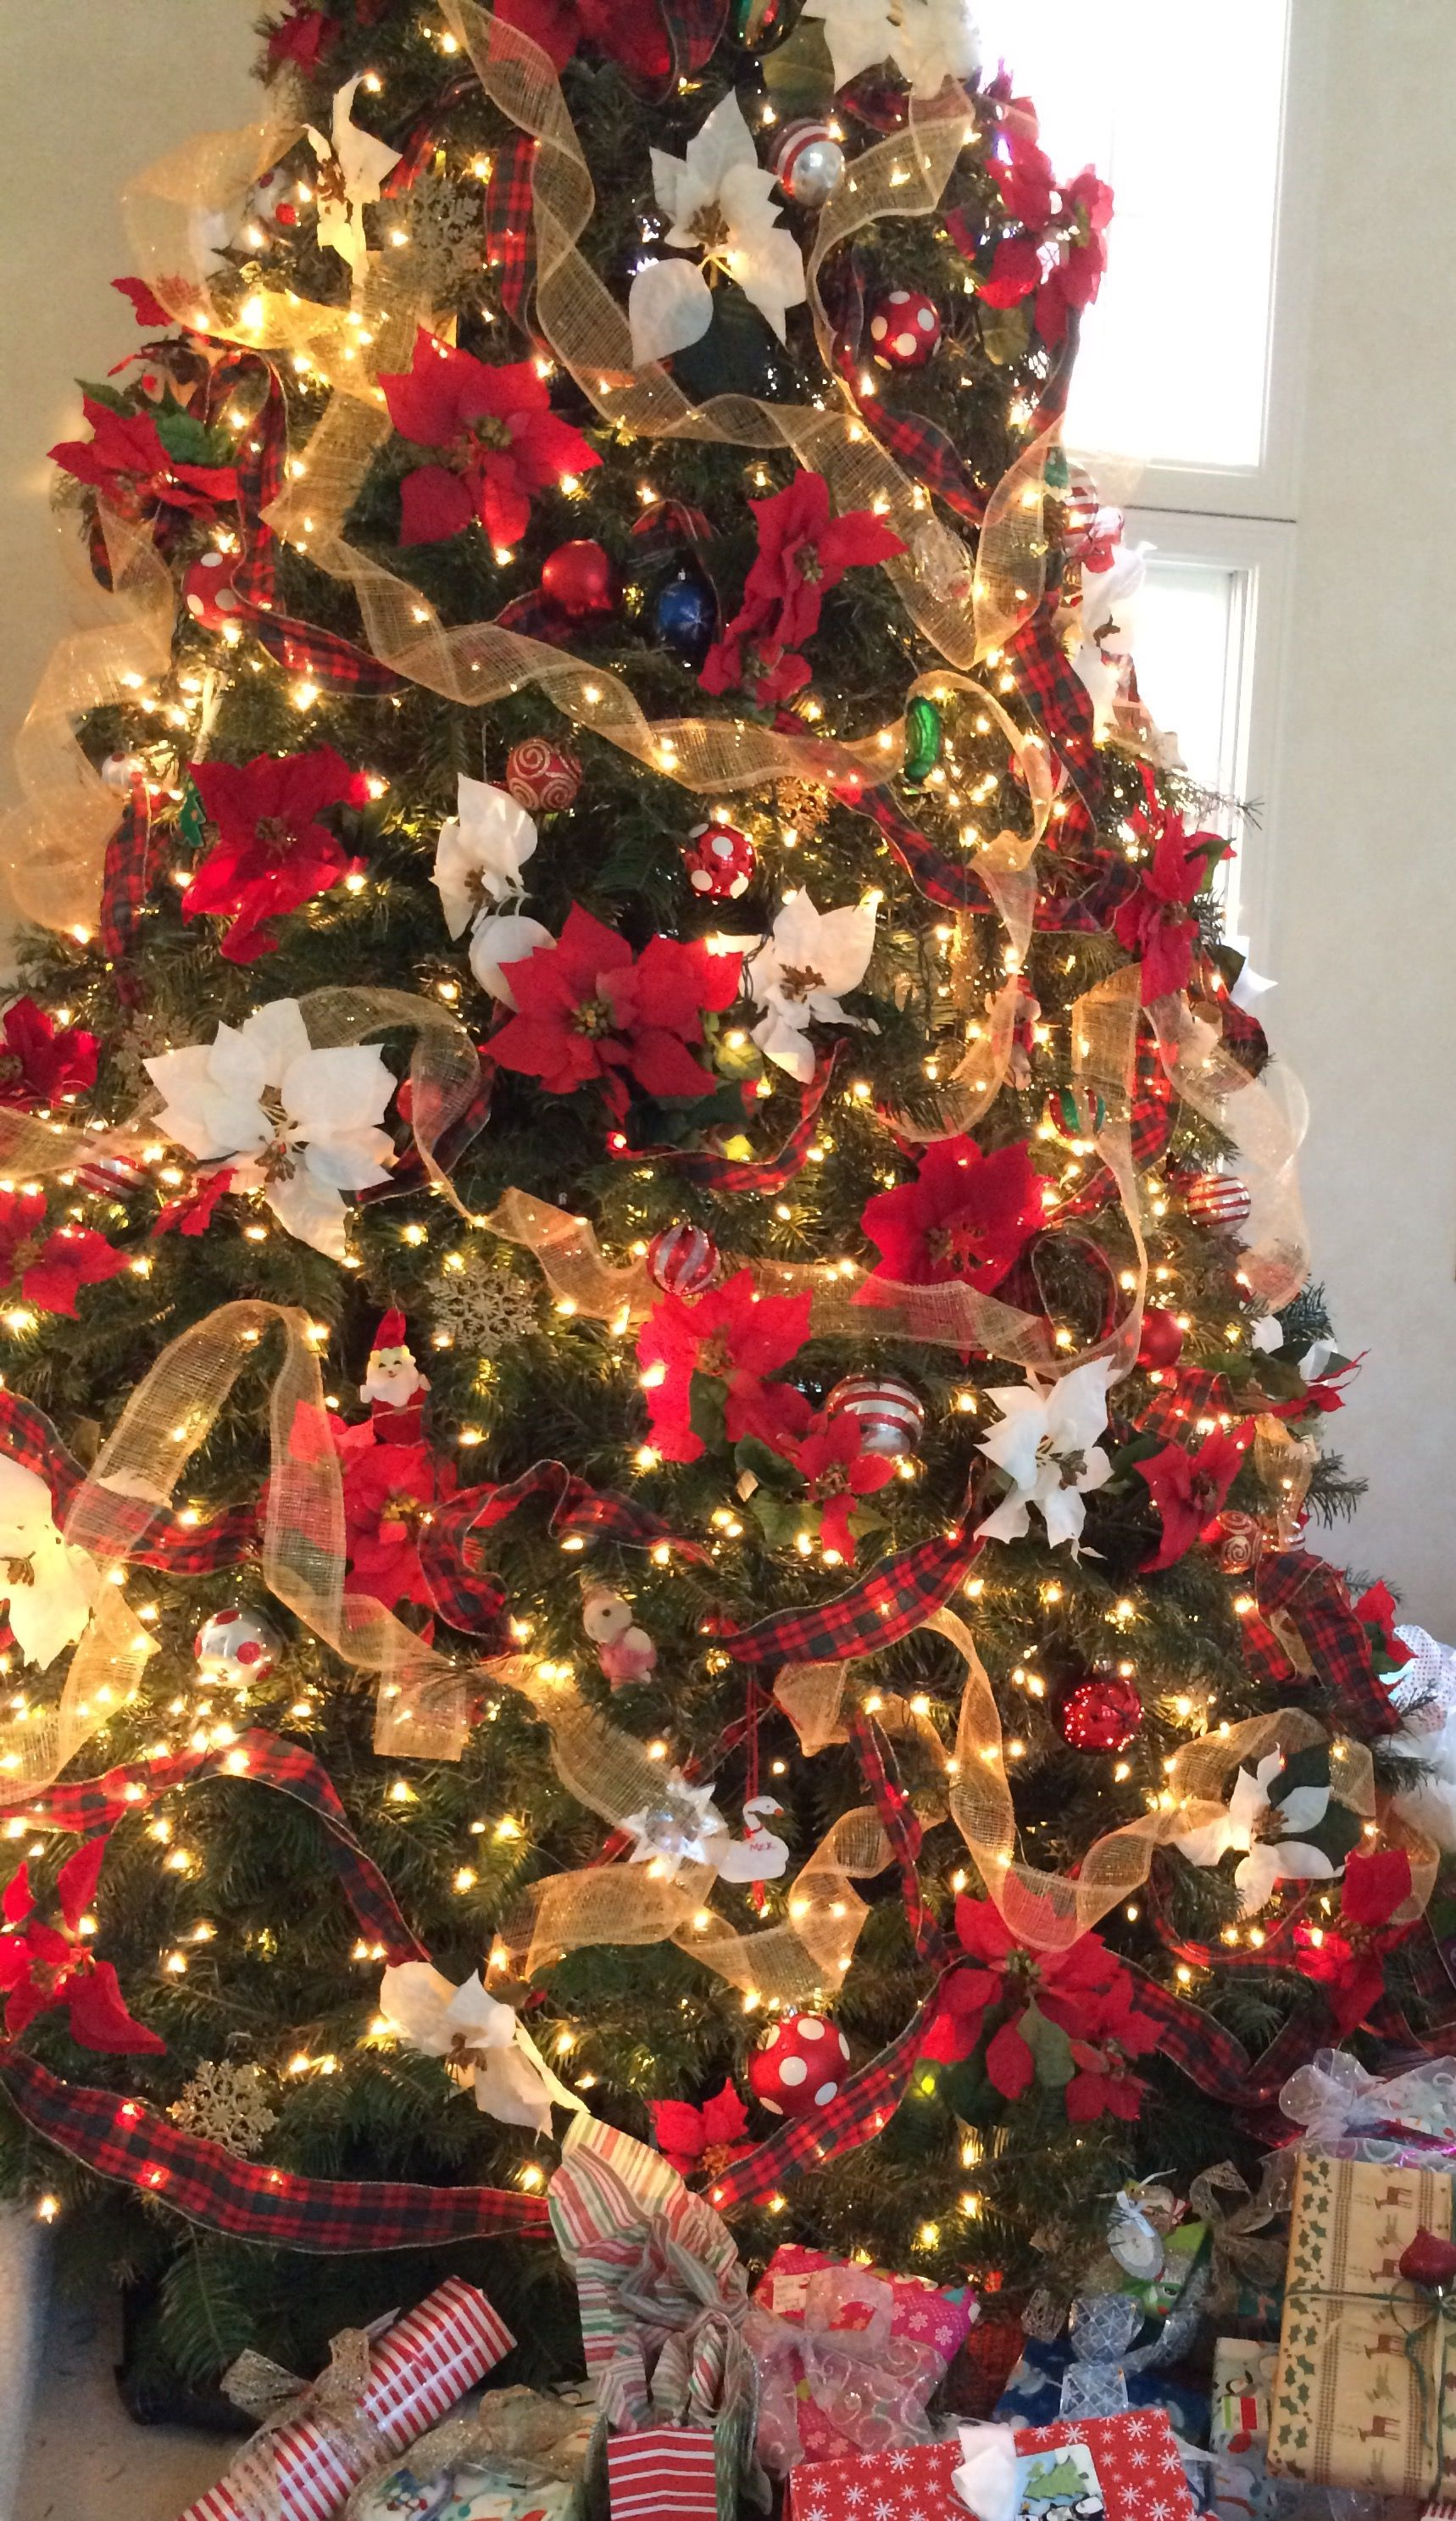 Christmas Tree Decor Decorated With Red And White Poinsettias And Gold And Plaid Wi Christmas Decorations Tree Ribbon On Christmas Tree Christmas Tree Themes